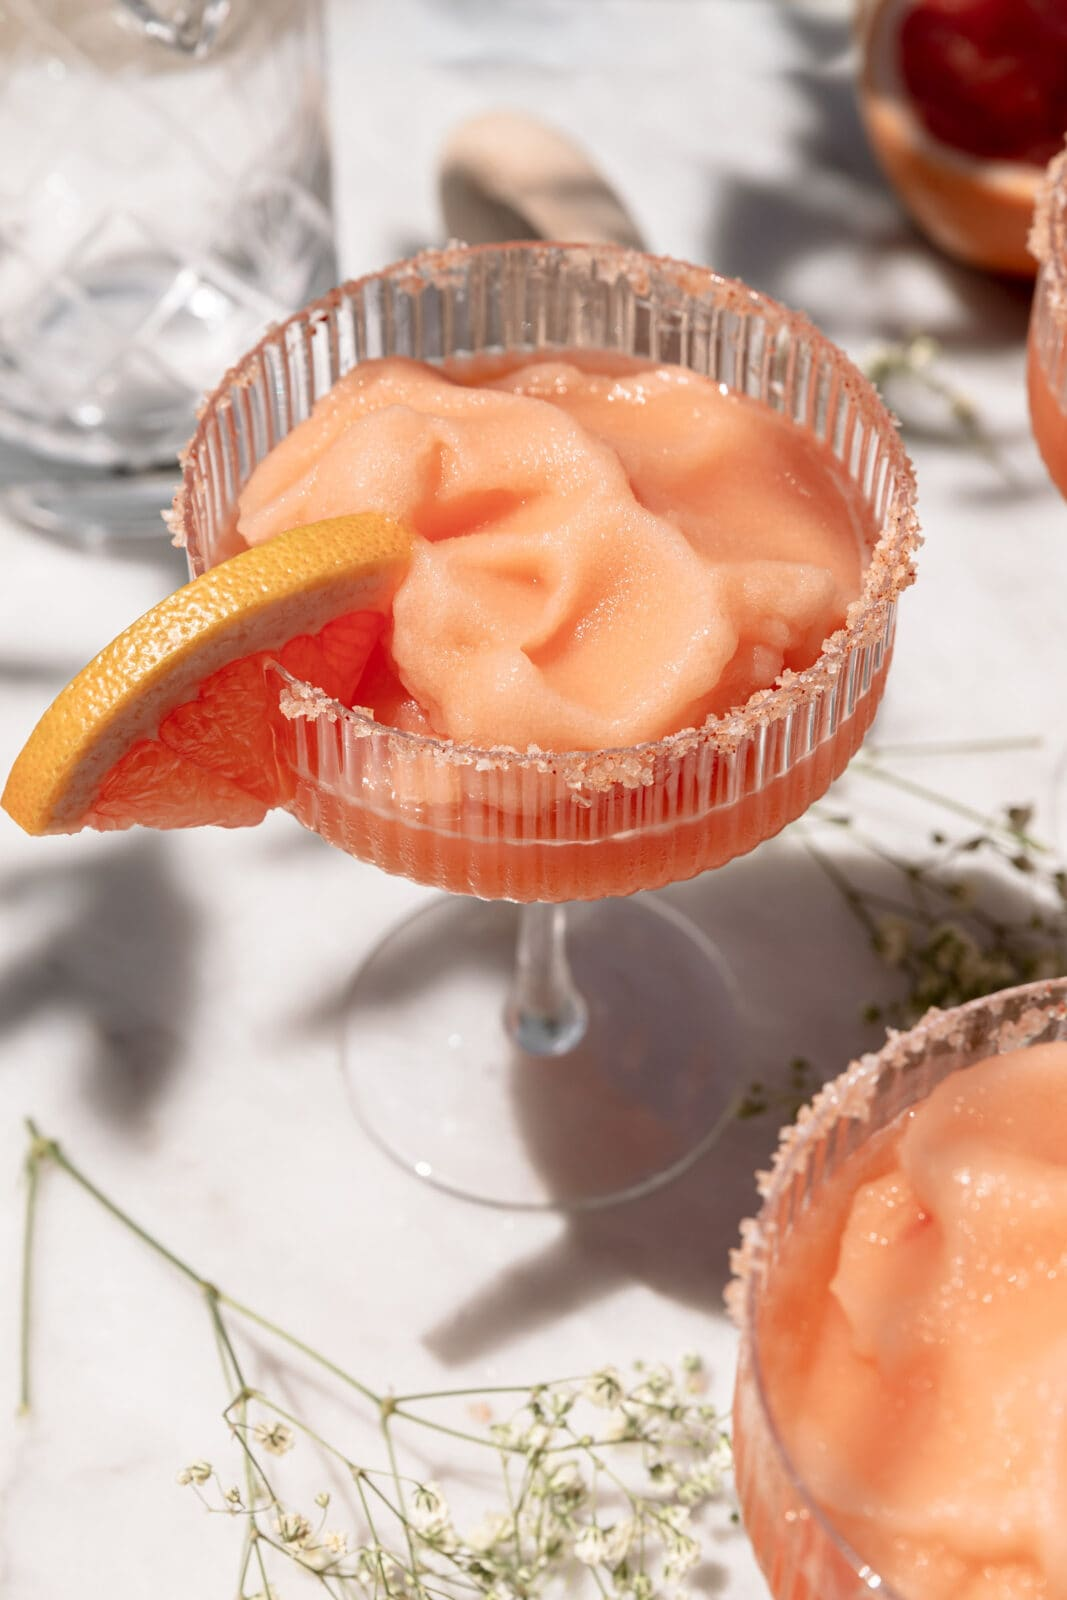 frozen paloma in a coupe glass with a salt rim